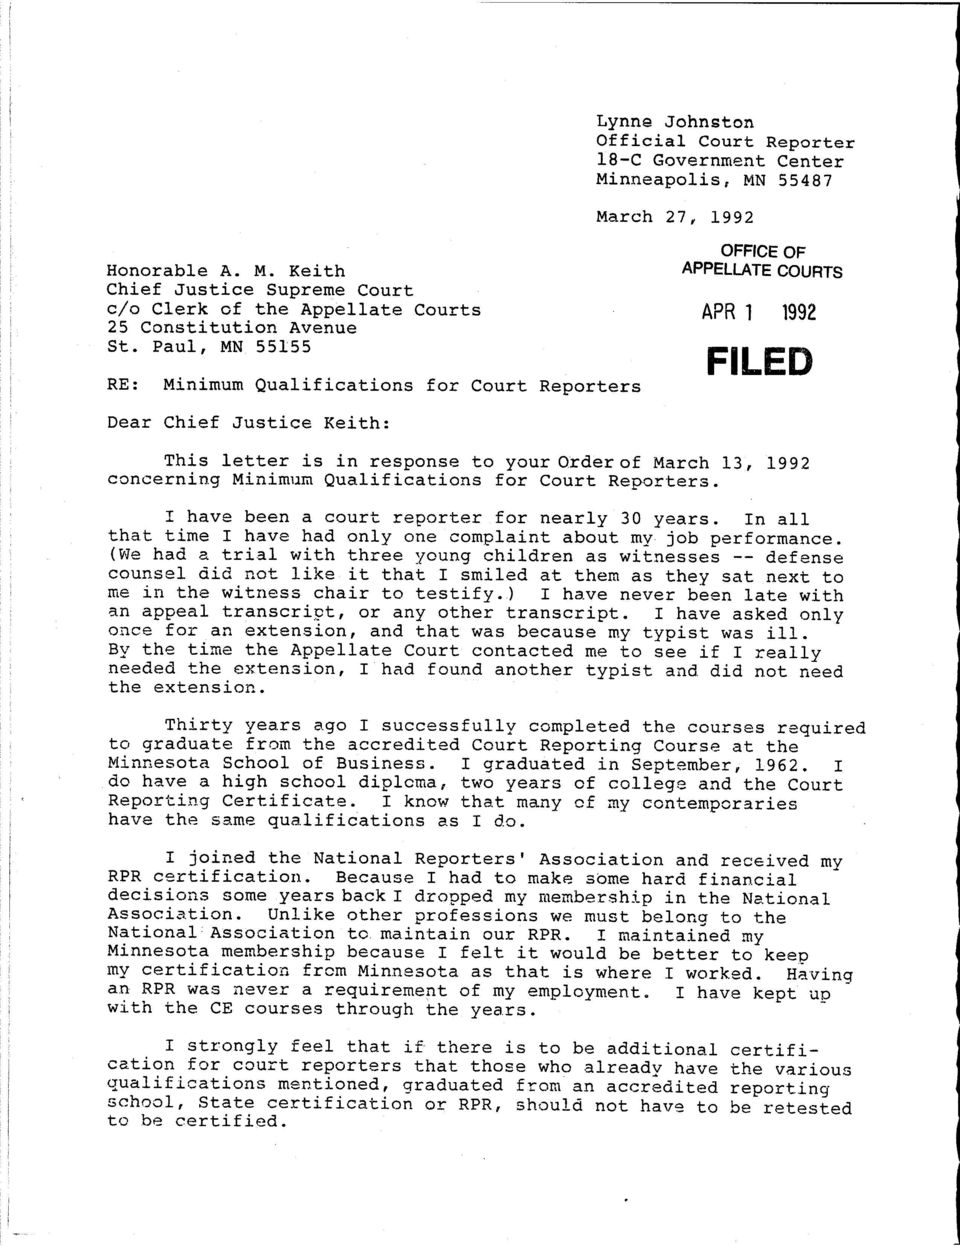 APPELLATE COURTS APR 1 1992 This letter is in response to your Orderof  March 13,